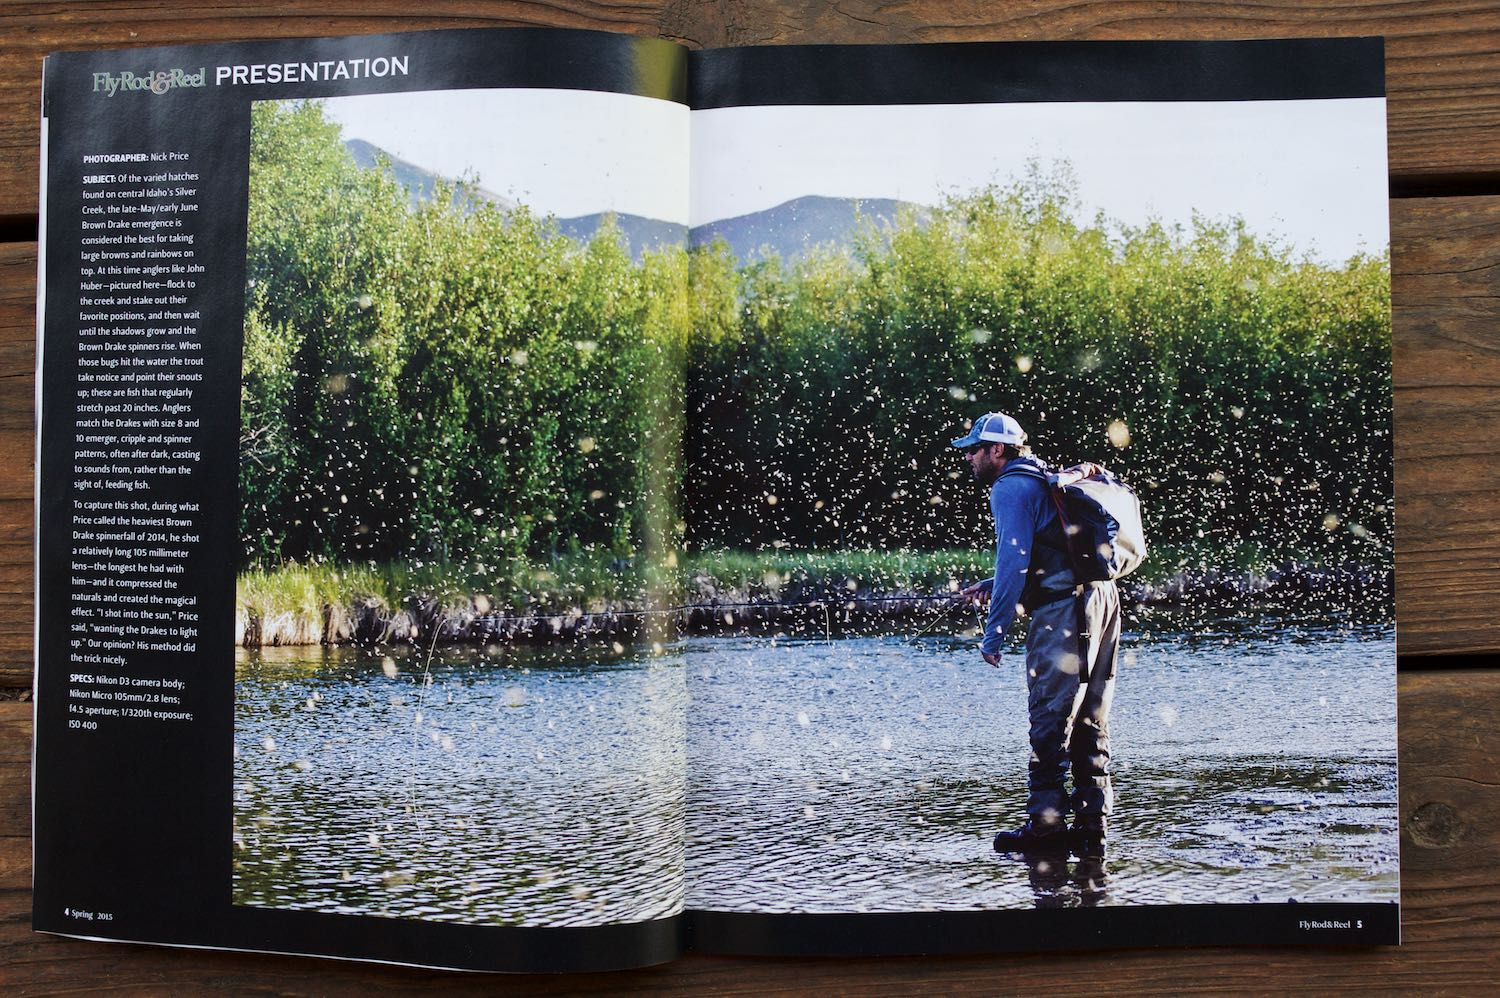 John Huber during a Brown Drake spinner fall from heaven on Silver Creek last year. Fly Rod & Reel Spring 2015 issue. Photo: Nick Price